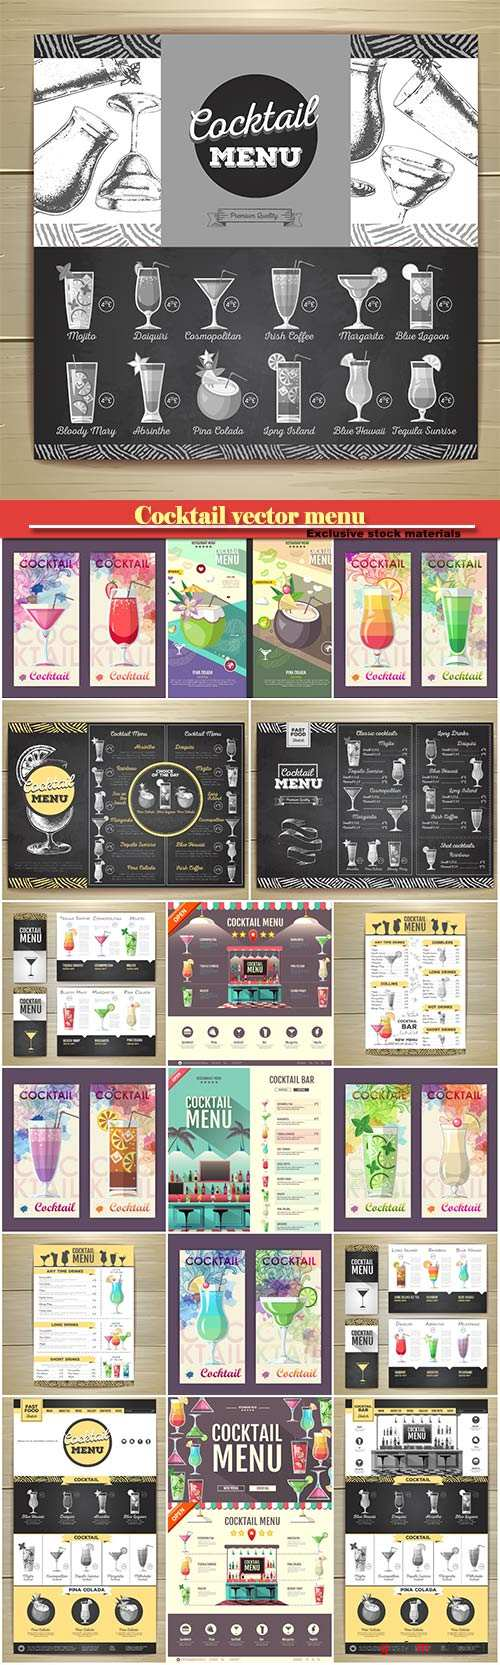 Cocktail vector menu, flat cocktail design on decorative watercolor background